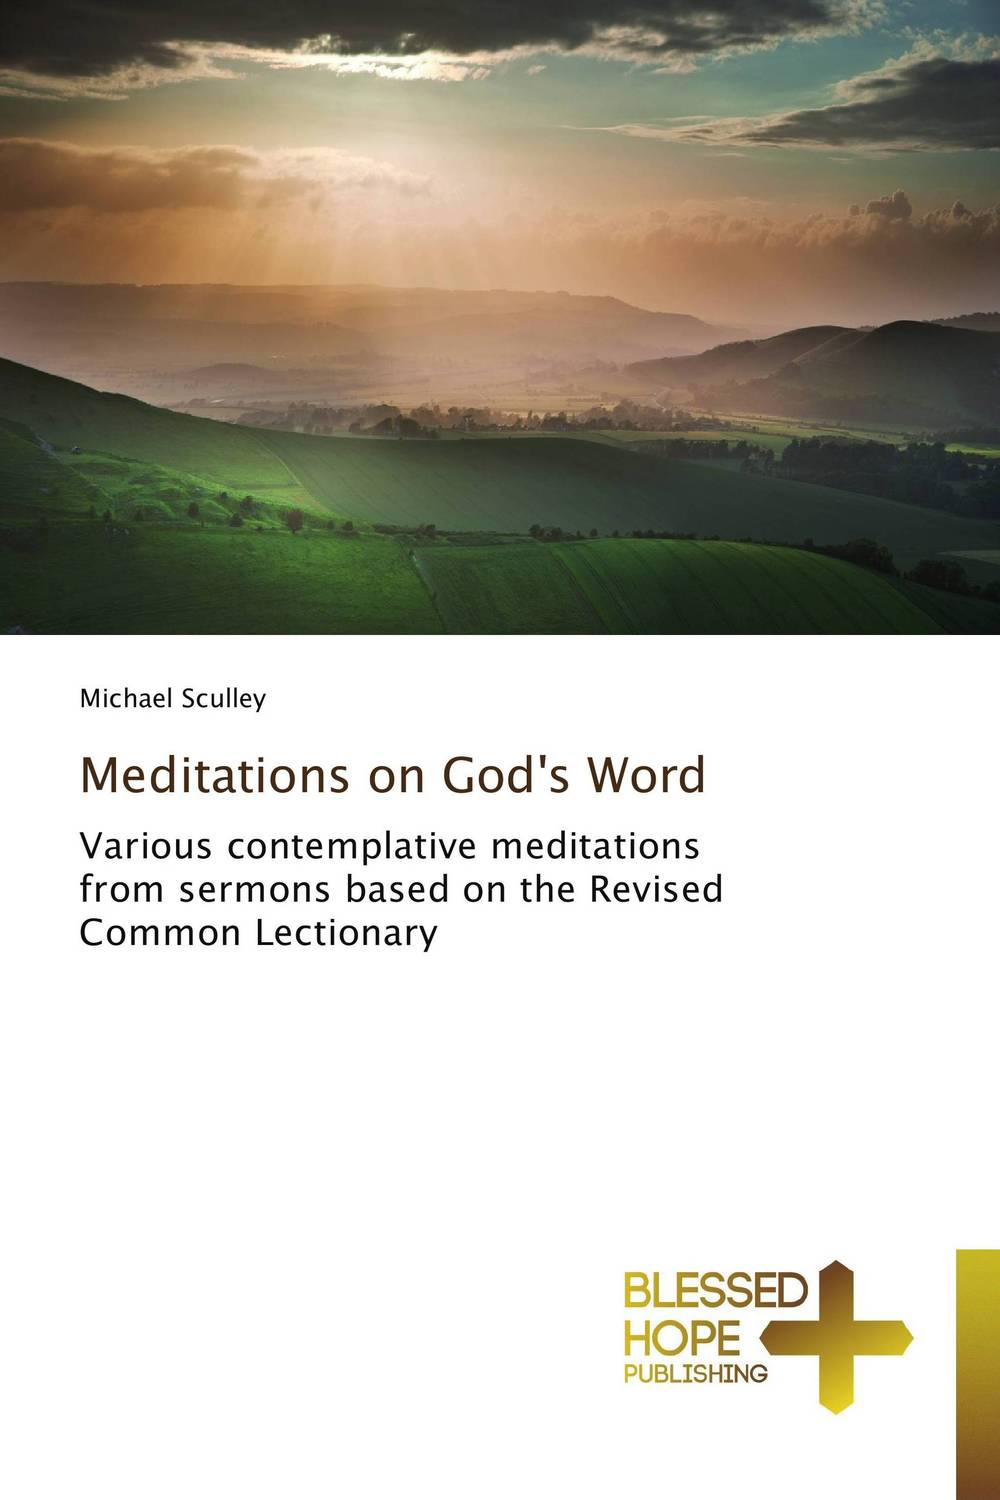 Meditations on God's Word sola scriptura benedict xvi s theology of the word of god